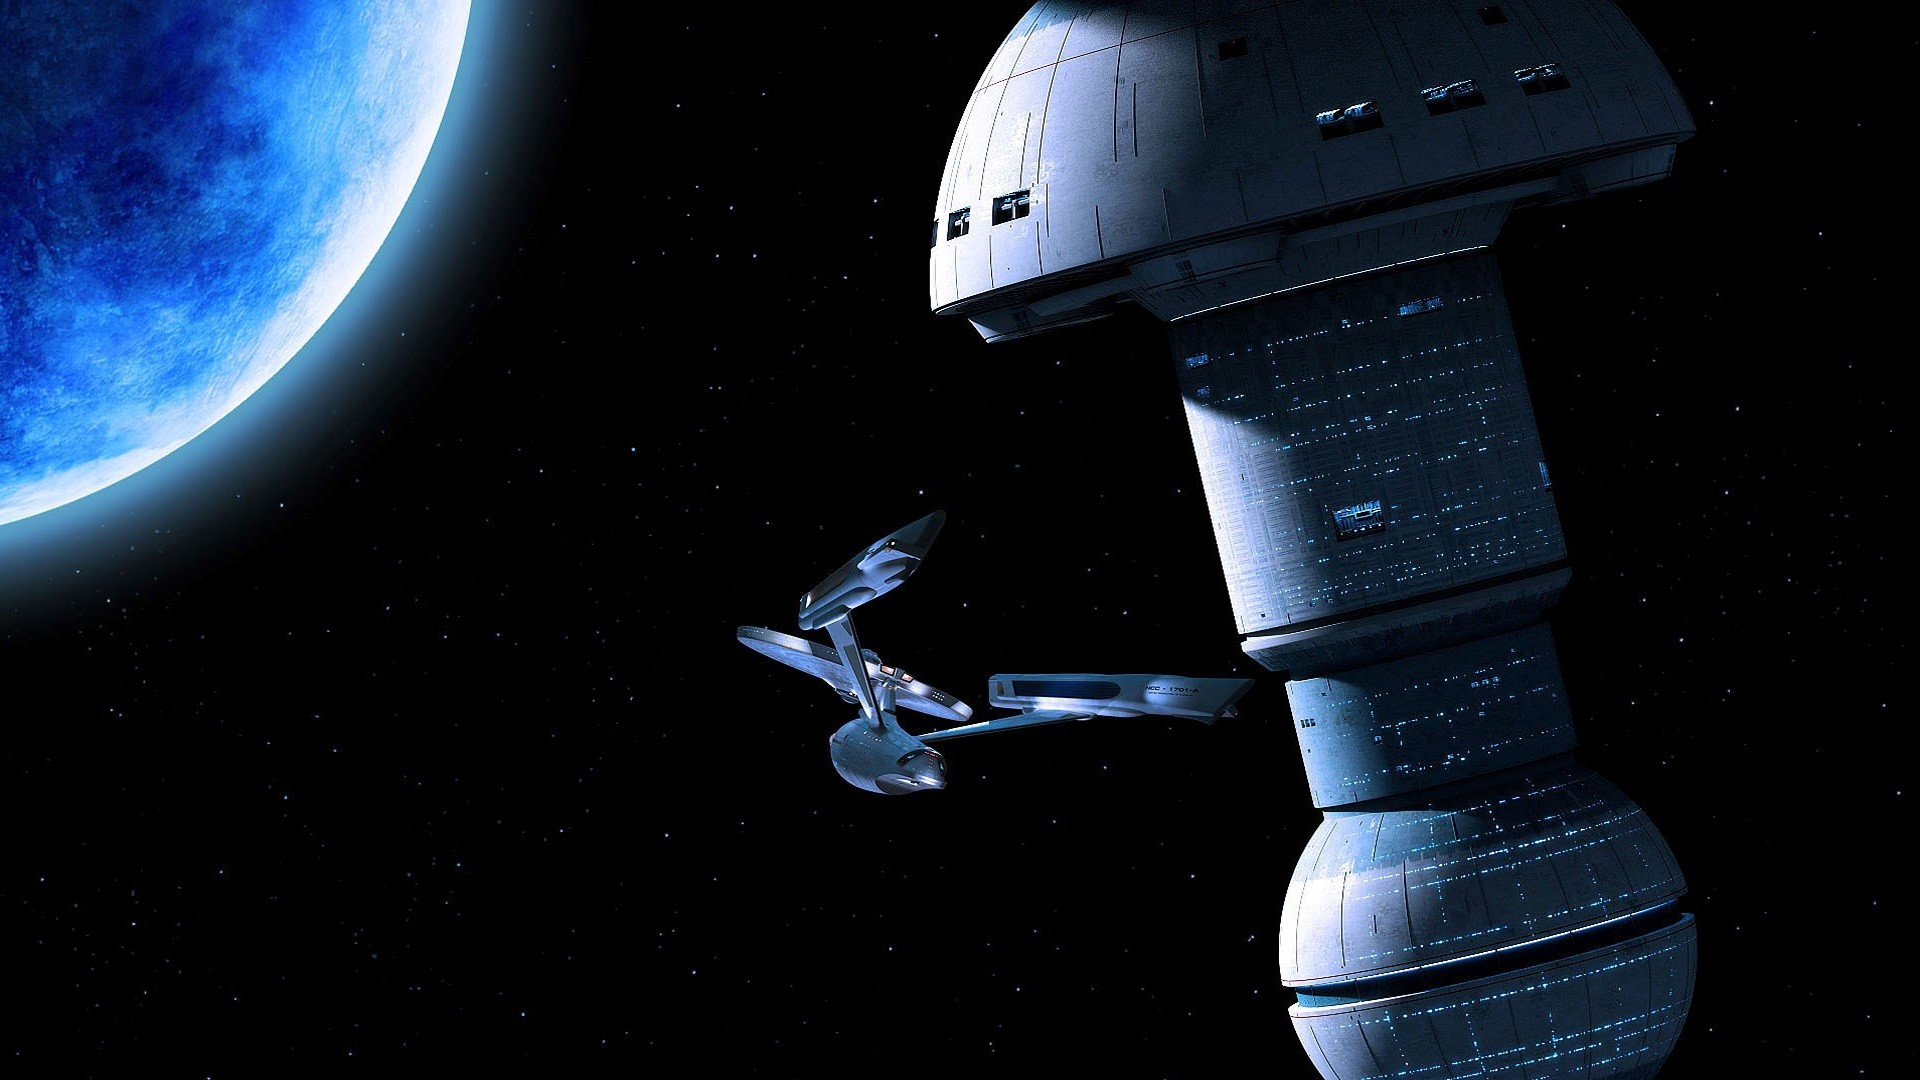 1920x1080 pictures images star trek wallpapers hd desktop wallpapers high definition  monitor download free amazing background photos artwork 1920×1080 Wallpaper  HD